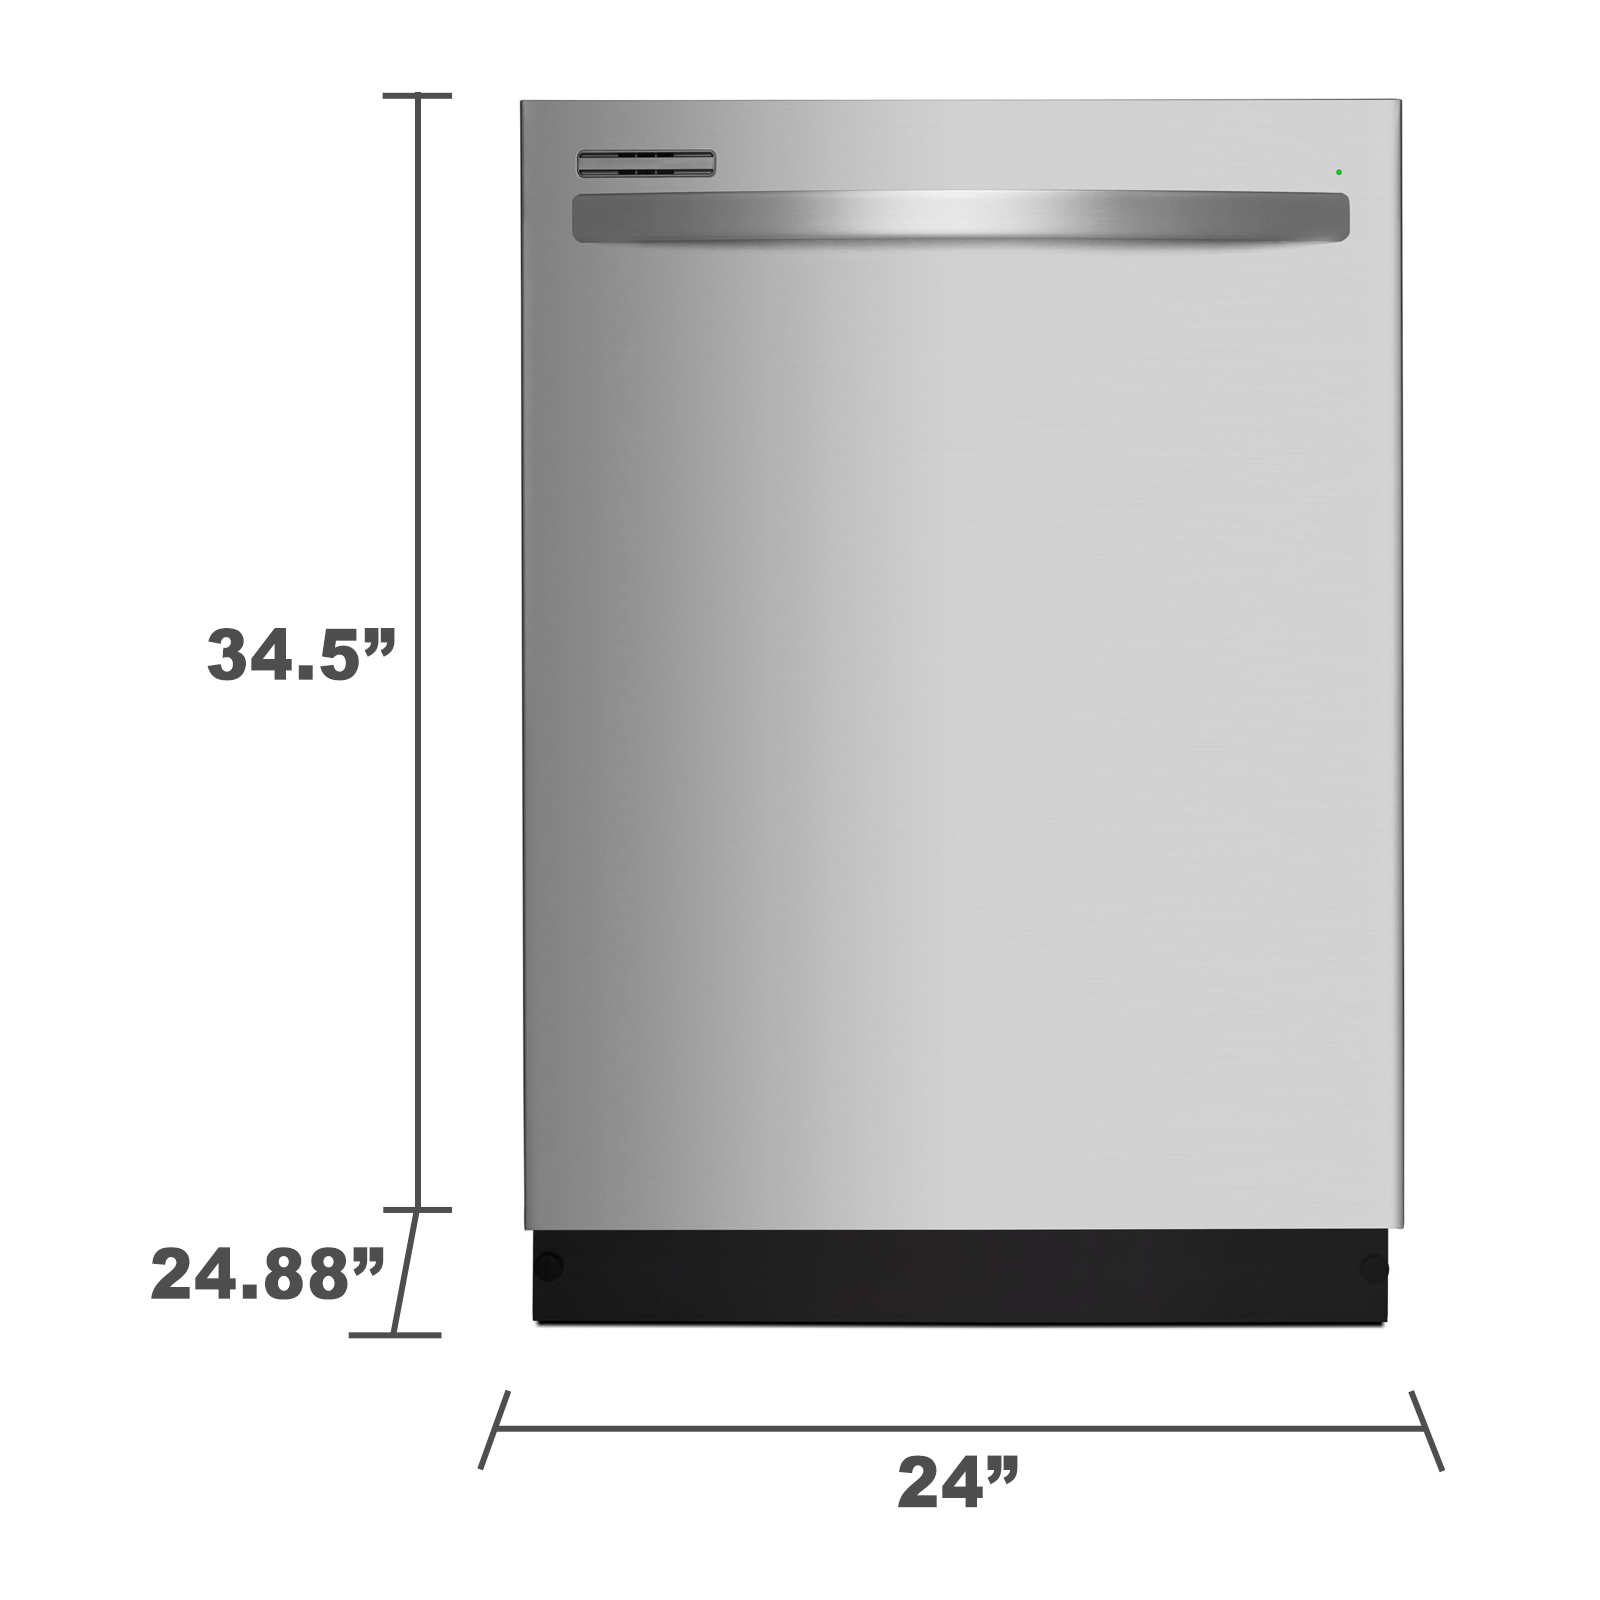 dishwasher dimensions space required